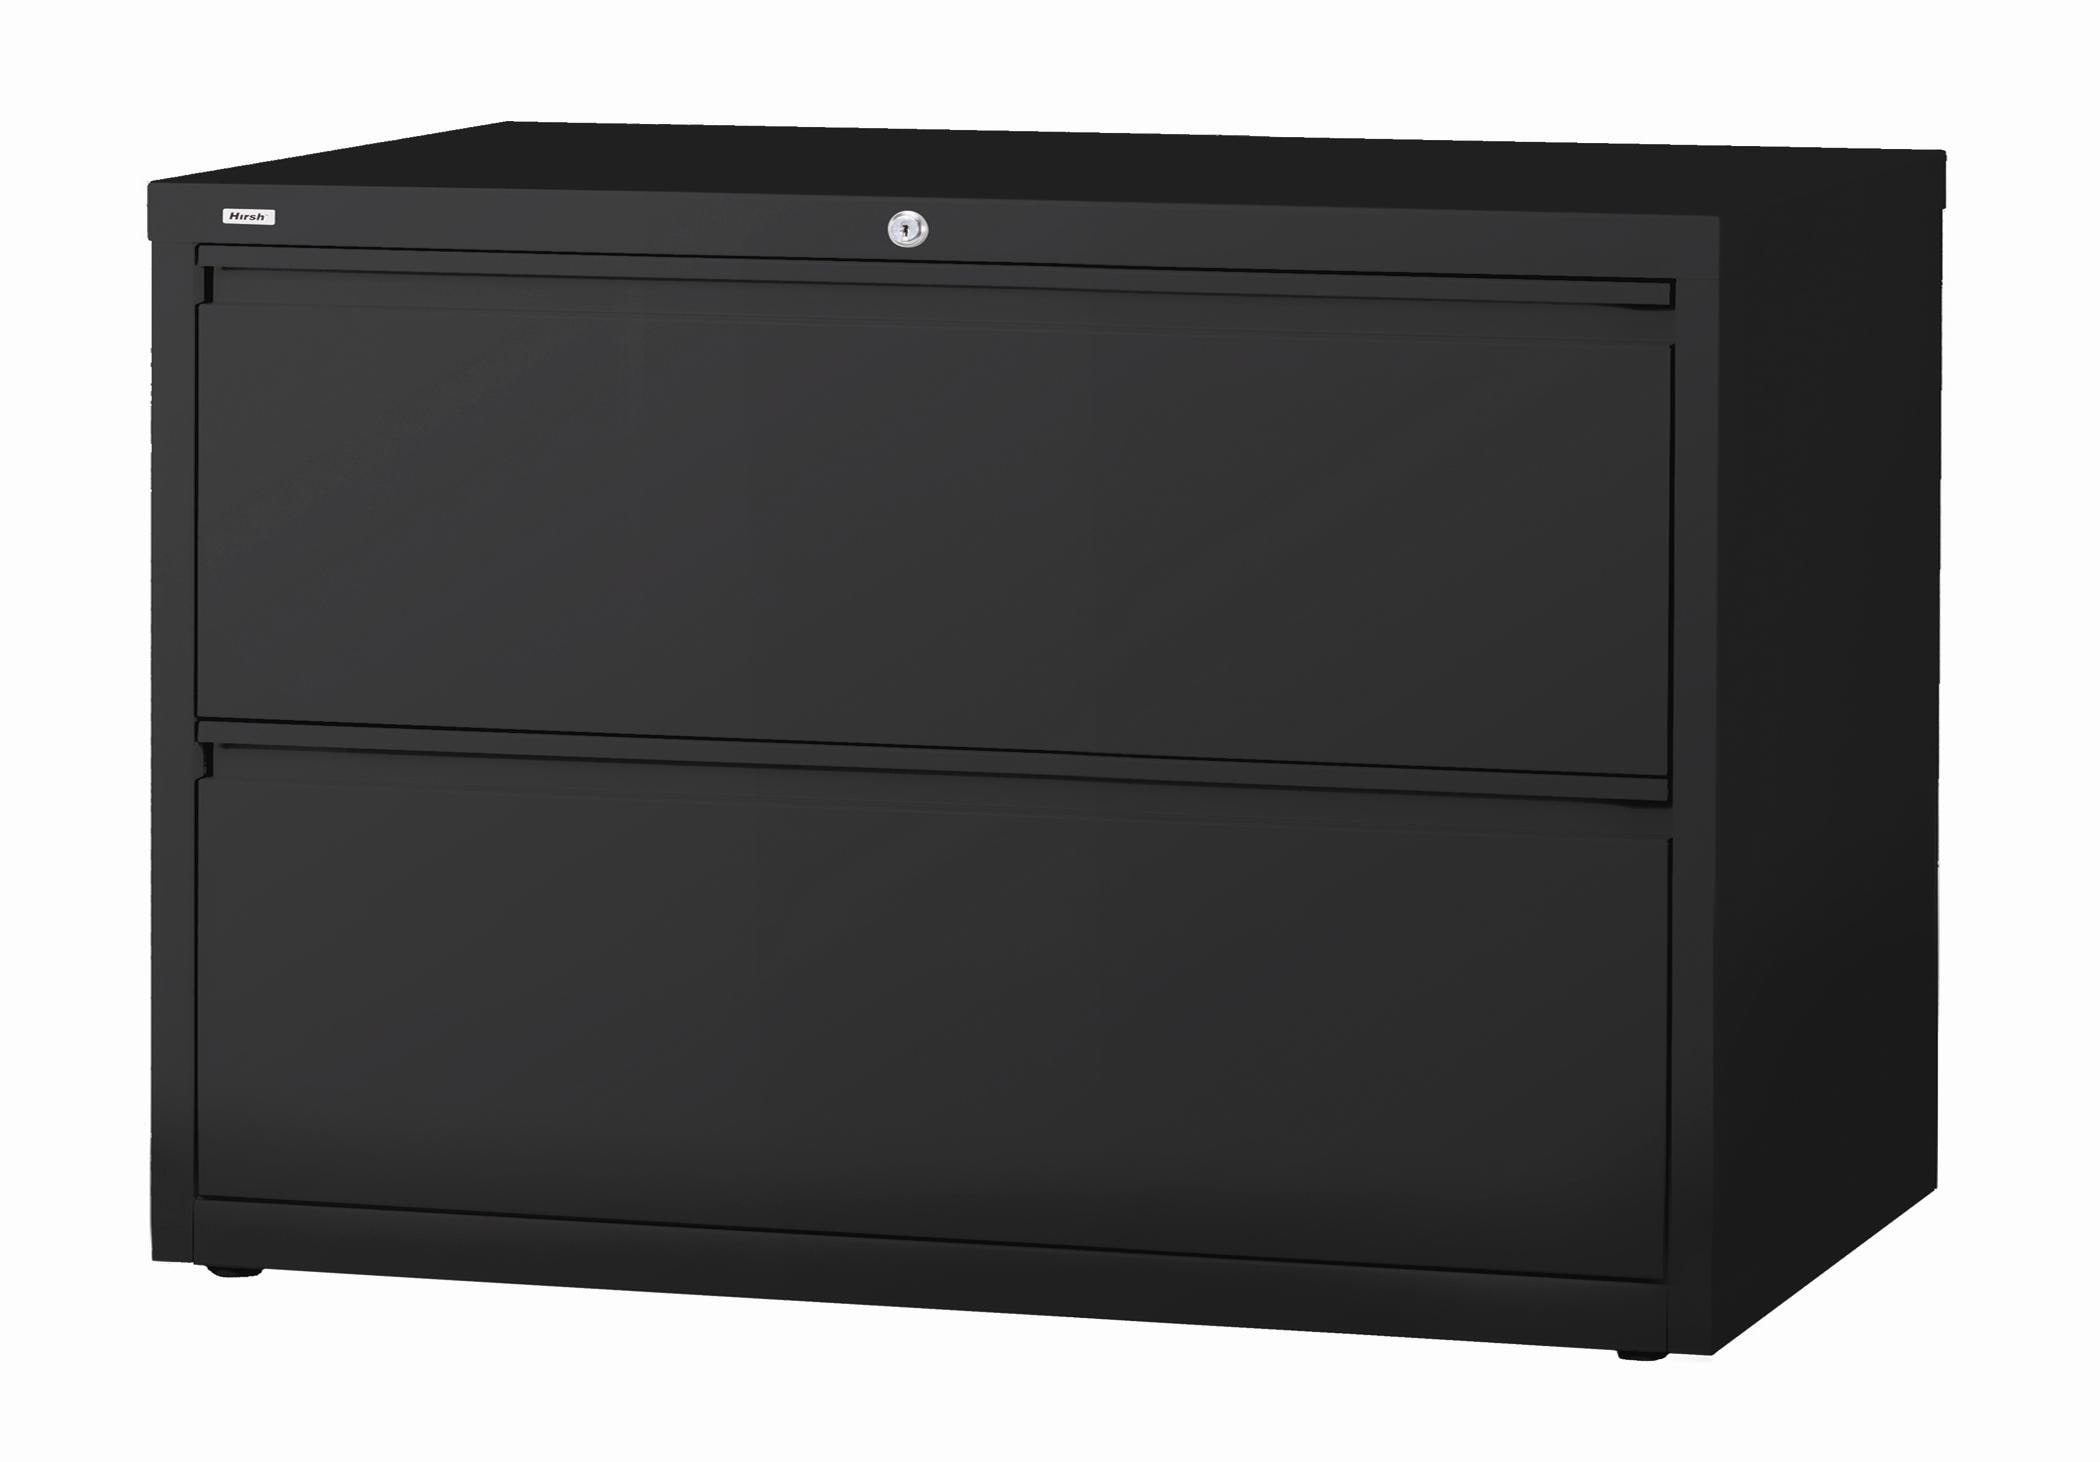 42 Lateral File Cabinet 2 Drawer: Hirsh HL10000 Series 42-inch Wide 2-drawer Commercial